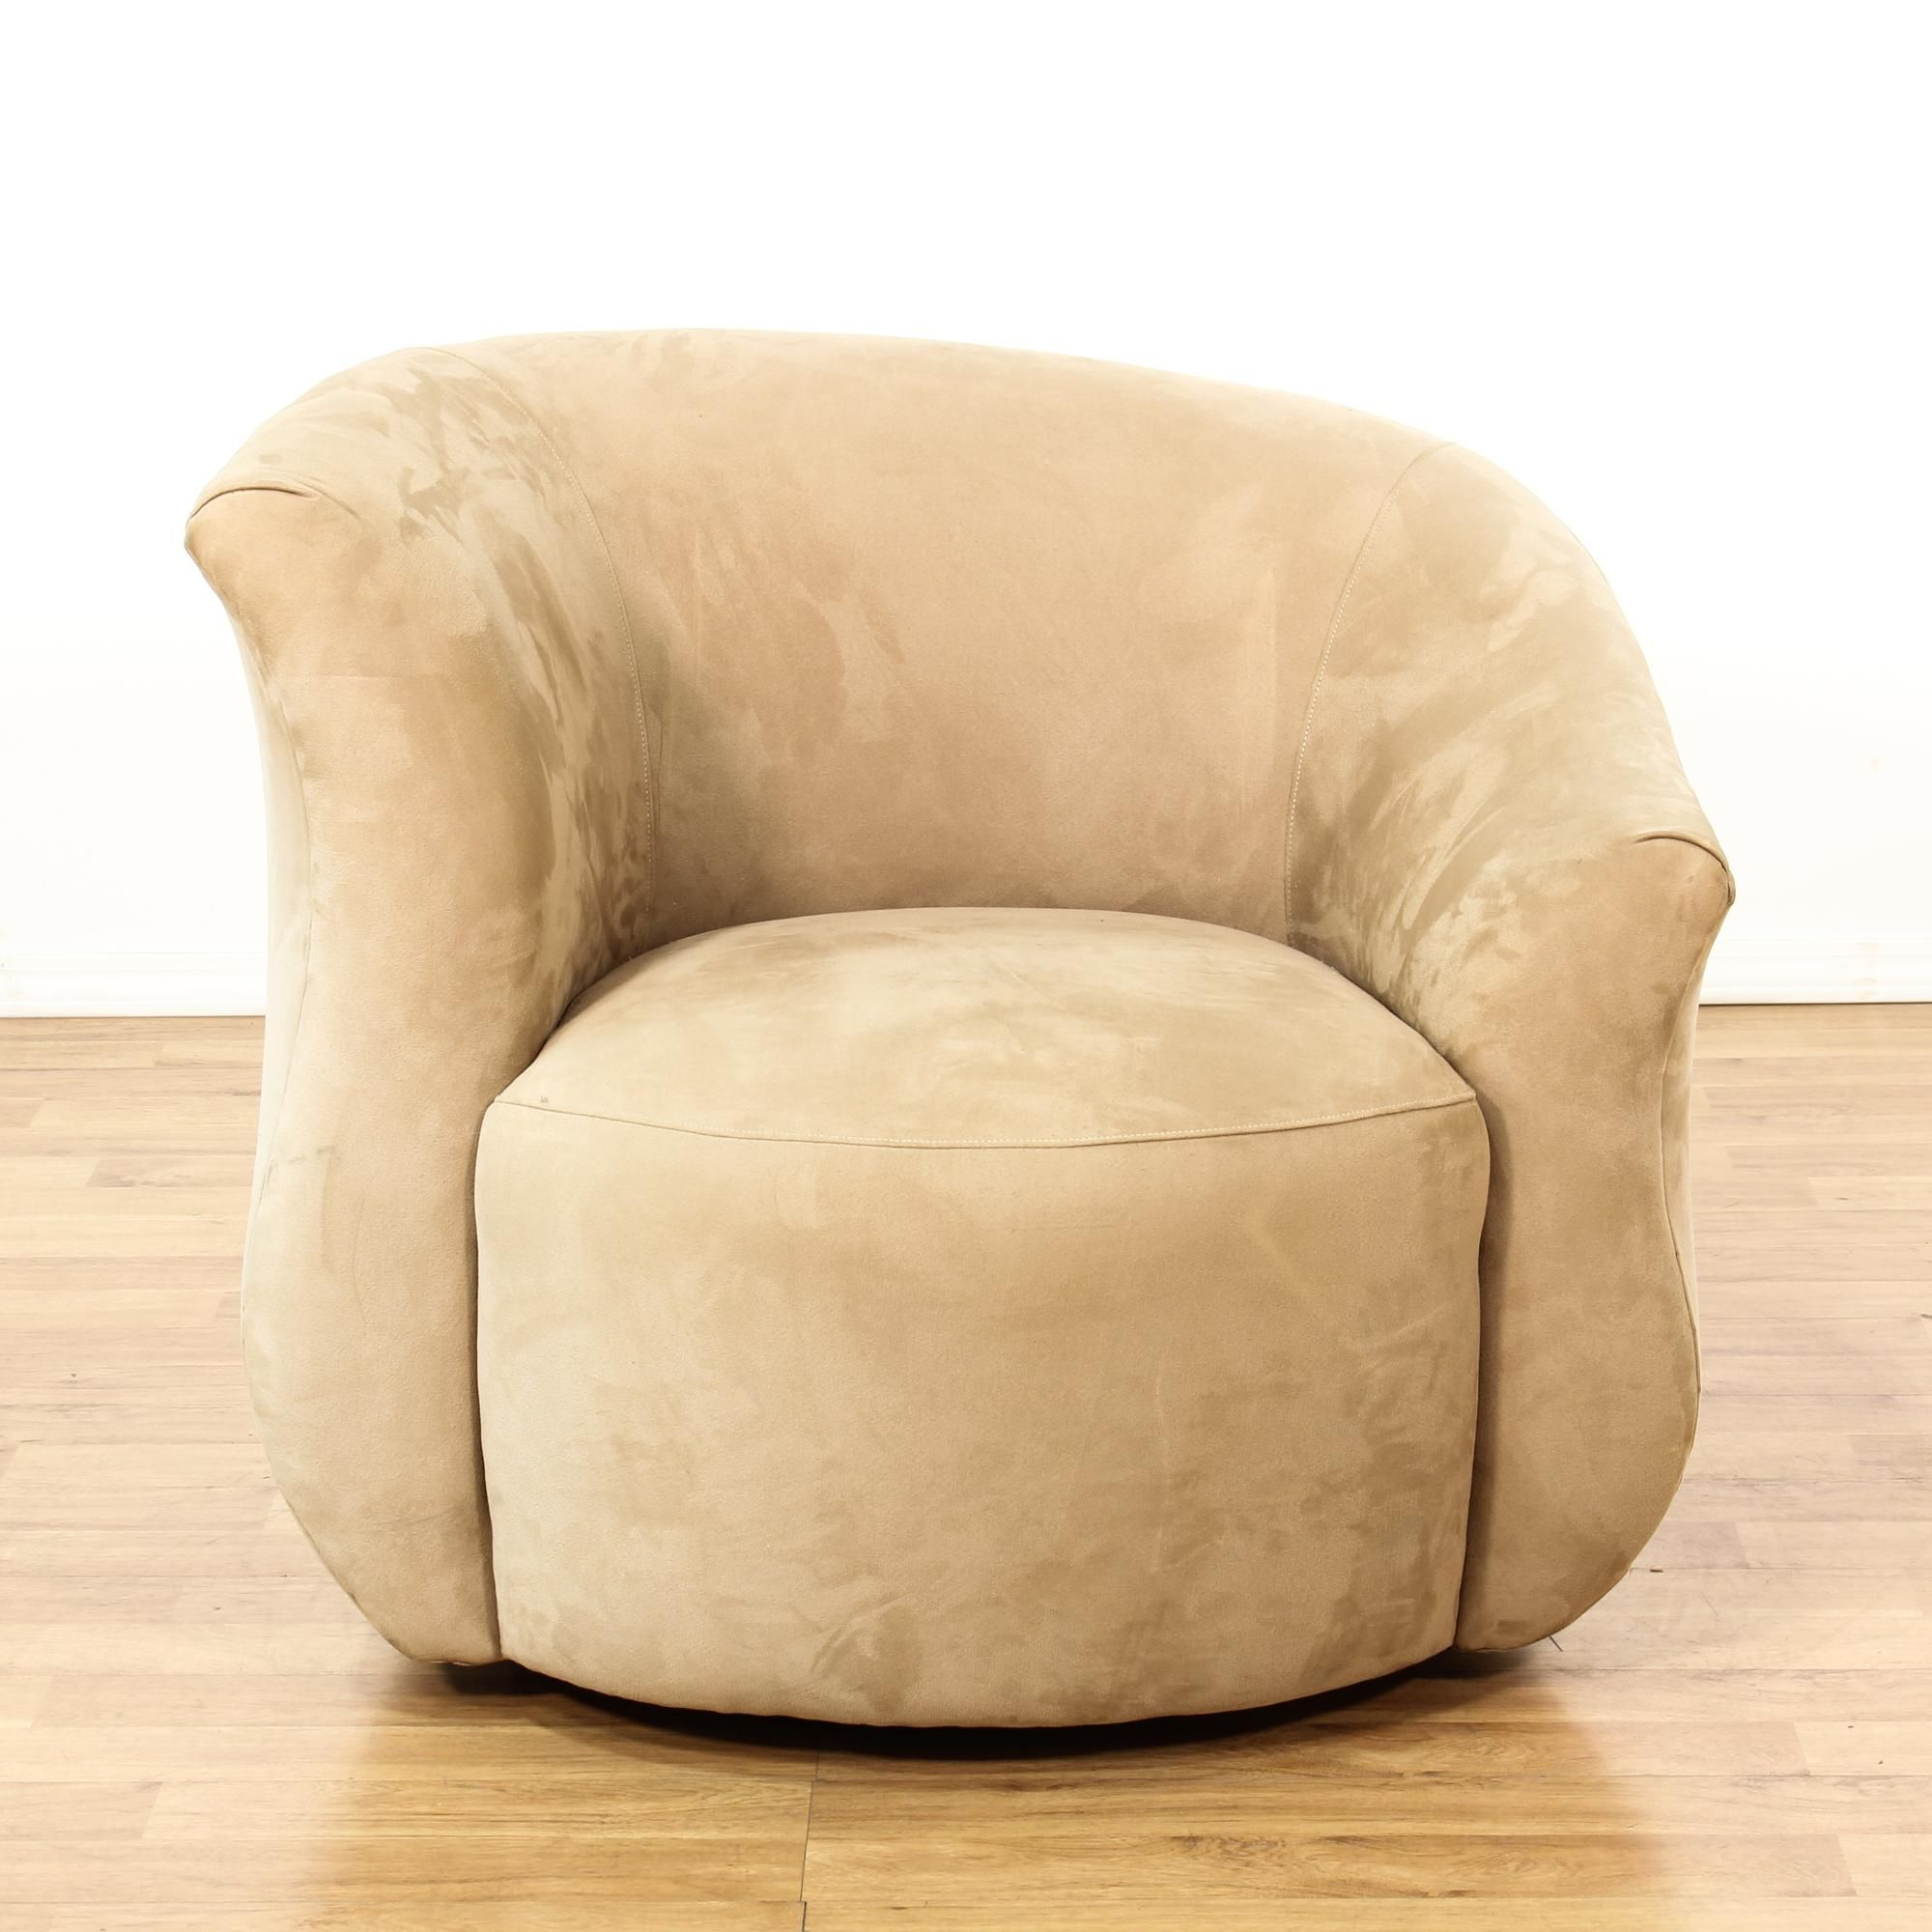 Accent chair contemporary - Contemporary Beige Curved Accent Chair